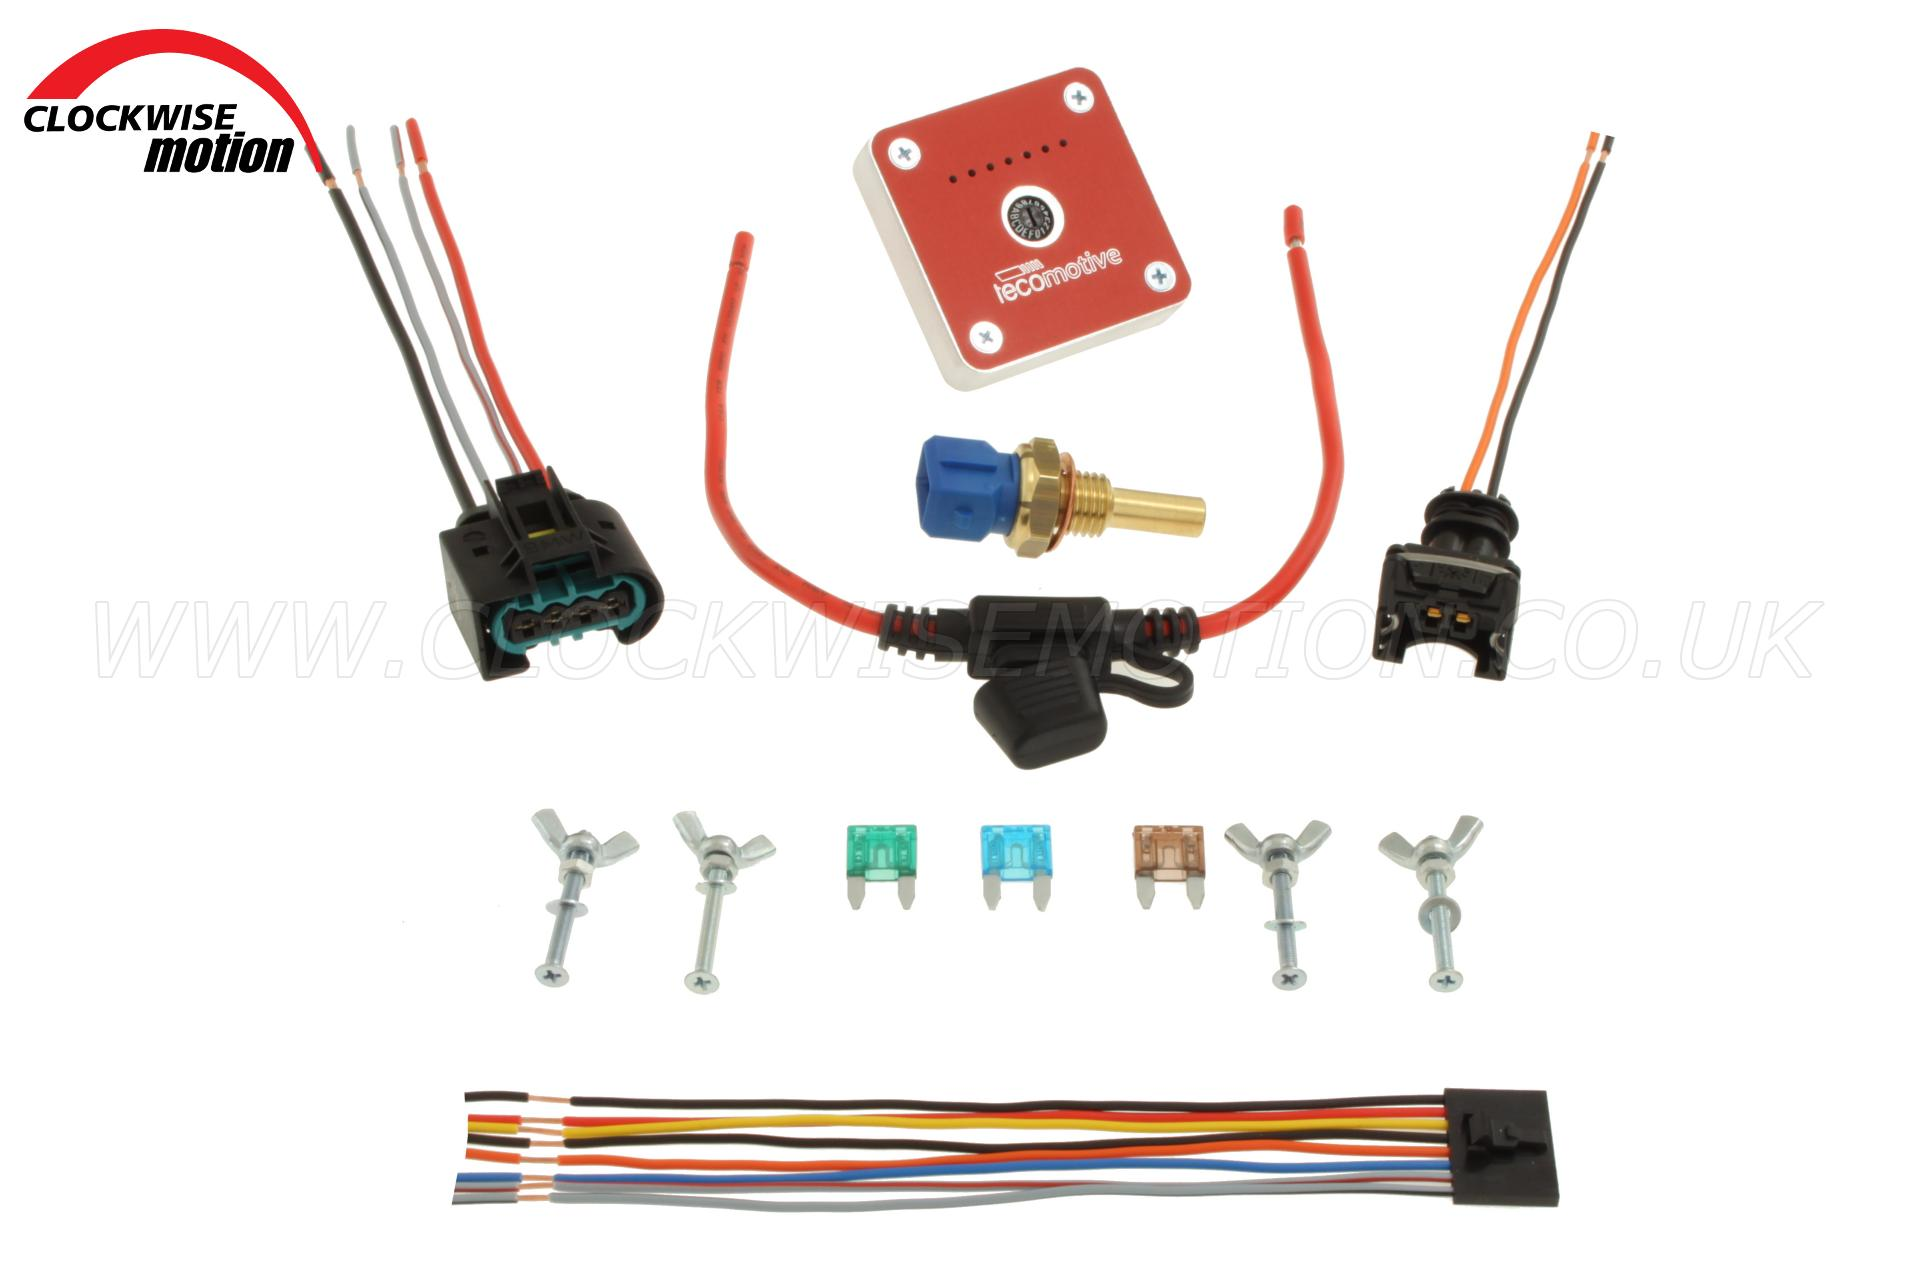 Electric Water Pump Controller Clockwise Motion Wiring